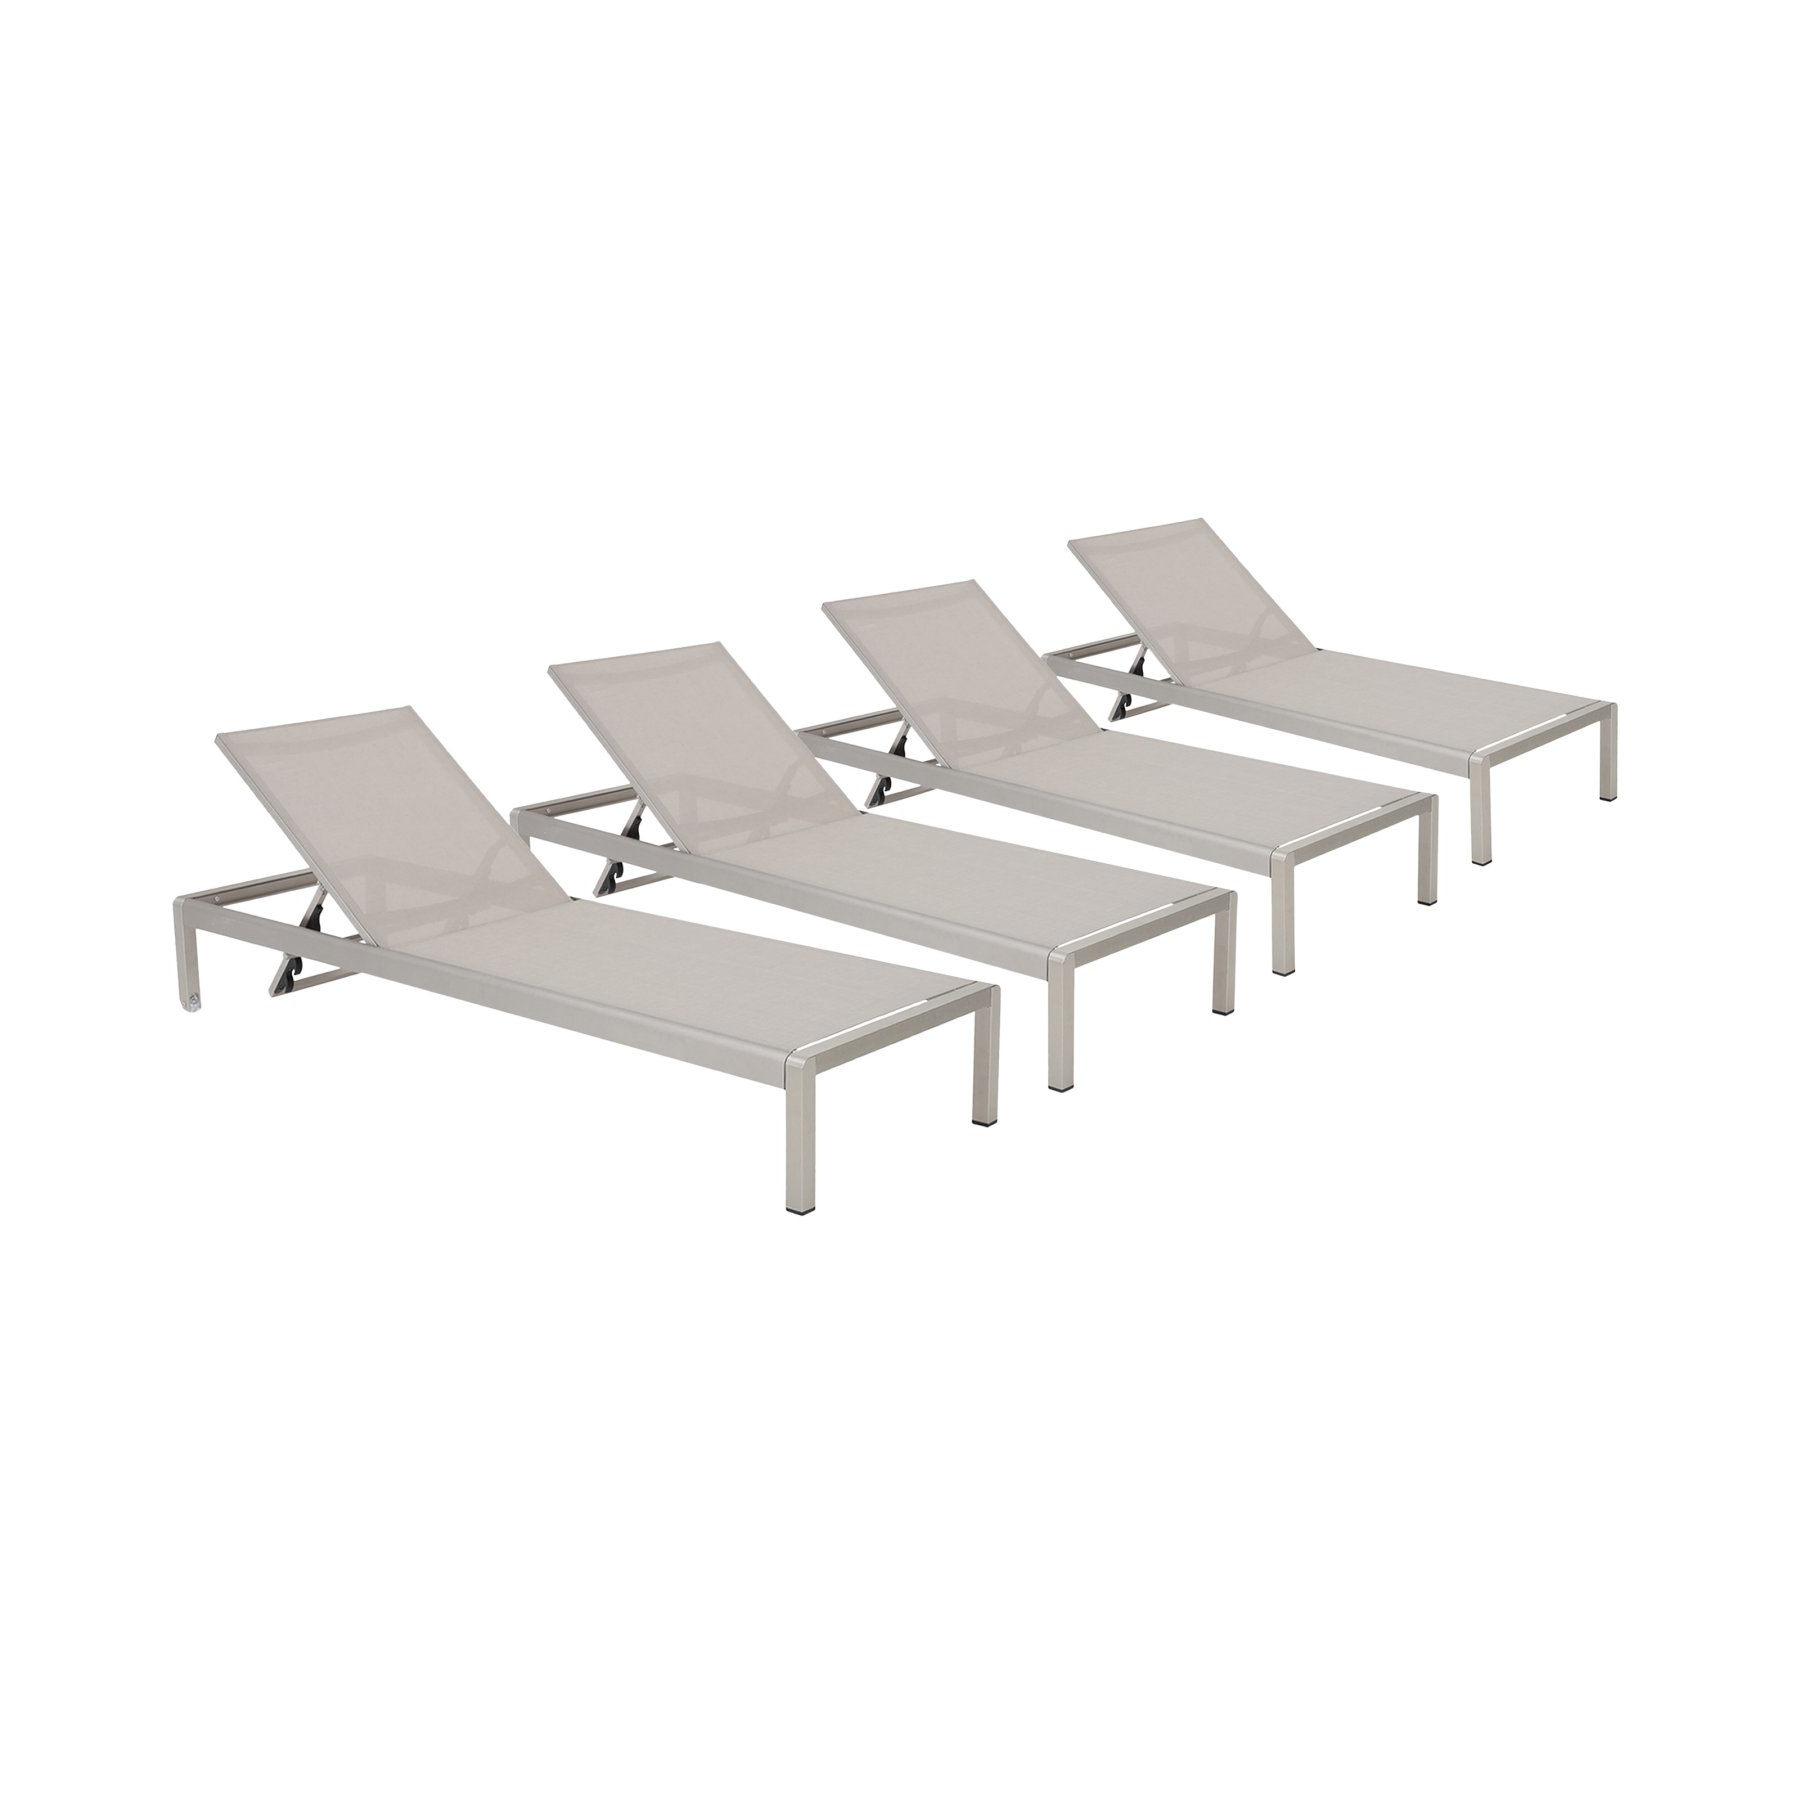 Most Up To Date Cape Coral Outdoor Chaise Lounges With Cushion With Outdoor Best Selling Home Cape Coral Mesh Patio Chaise (View 13 of 25)